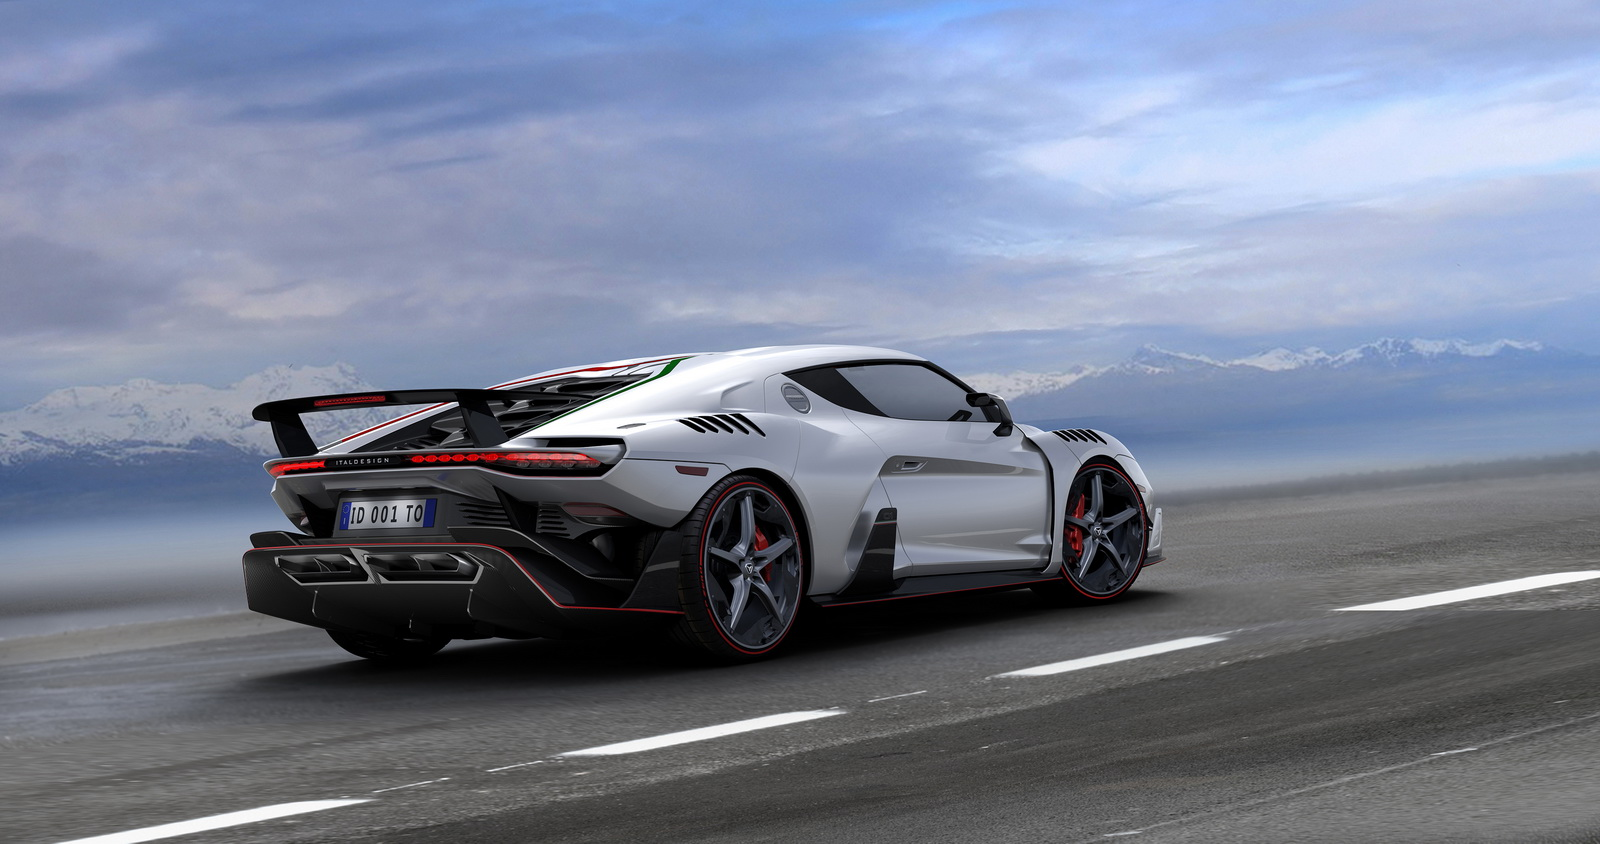 Italdesign Zerouno (10)